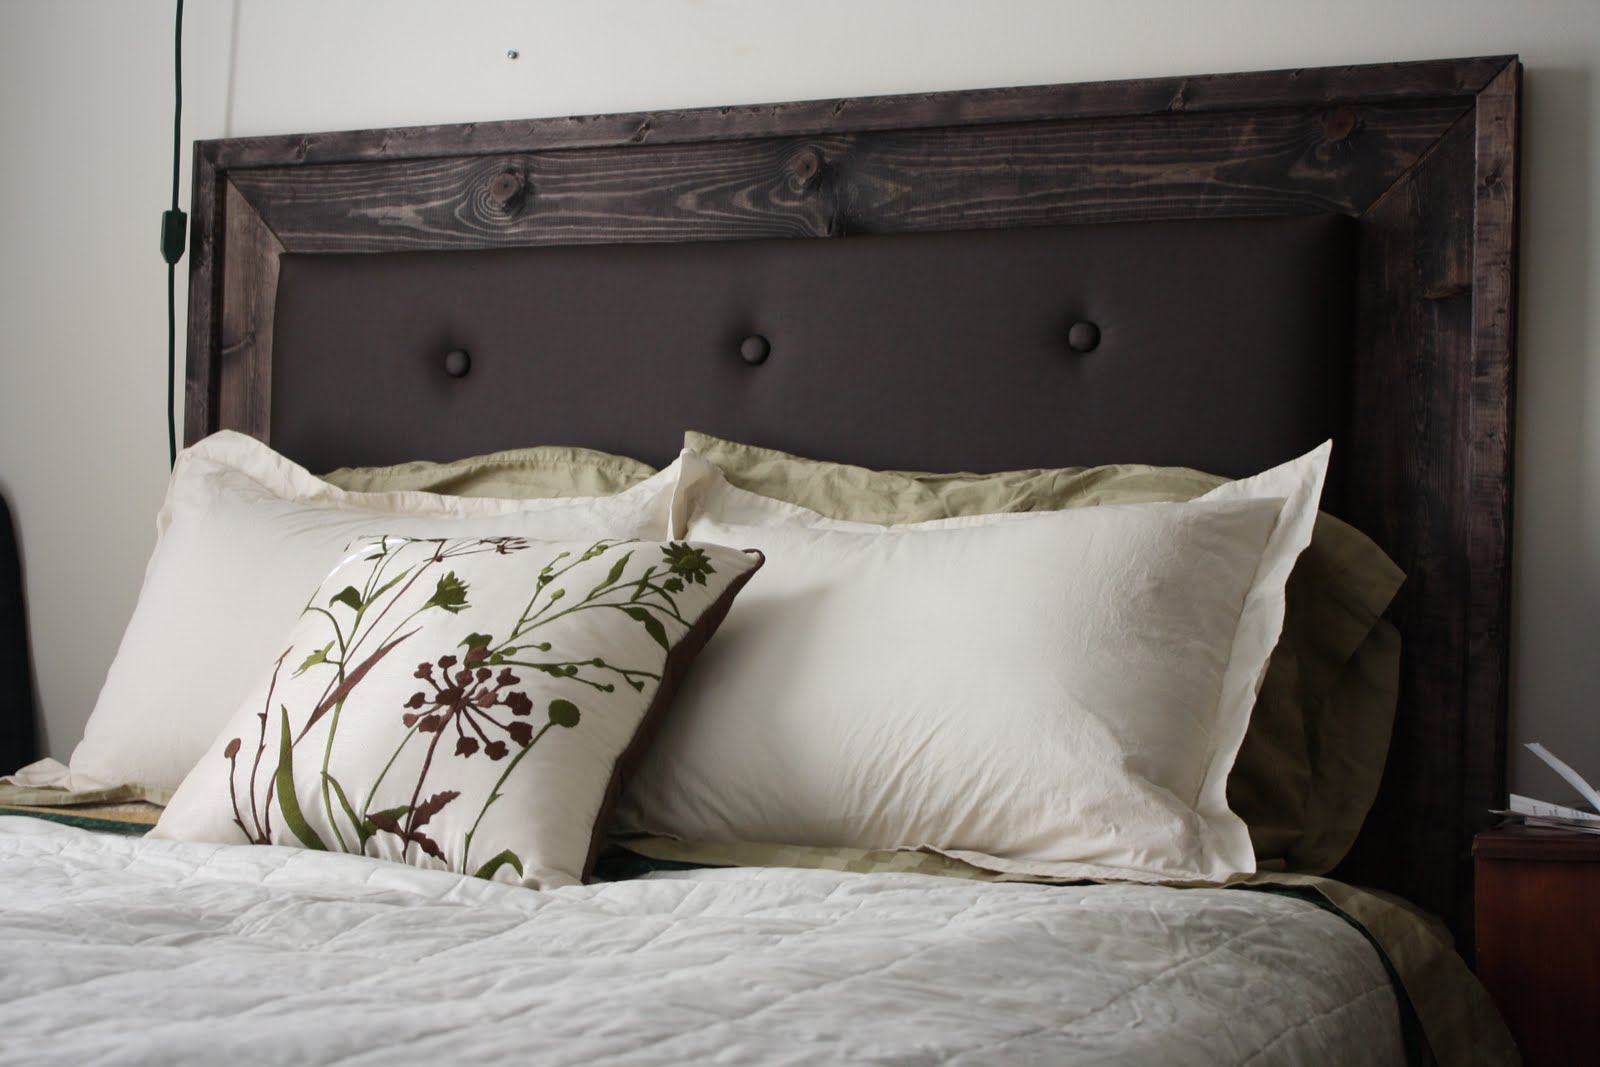 Design Upholstered Headboards Diy more like home simple upholstered headboard